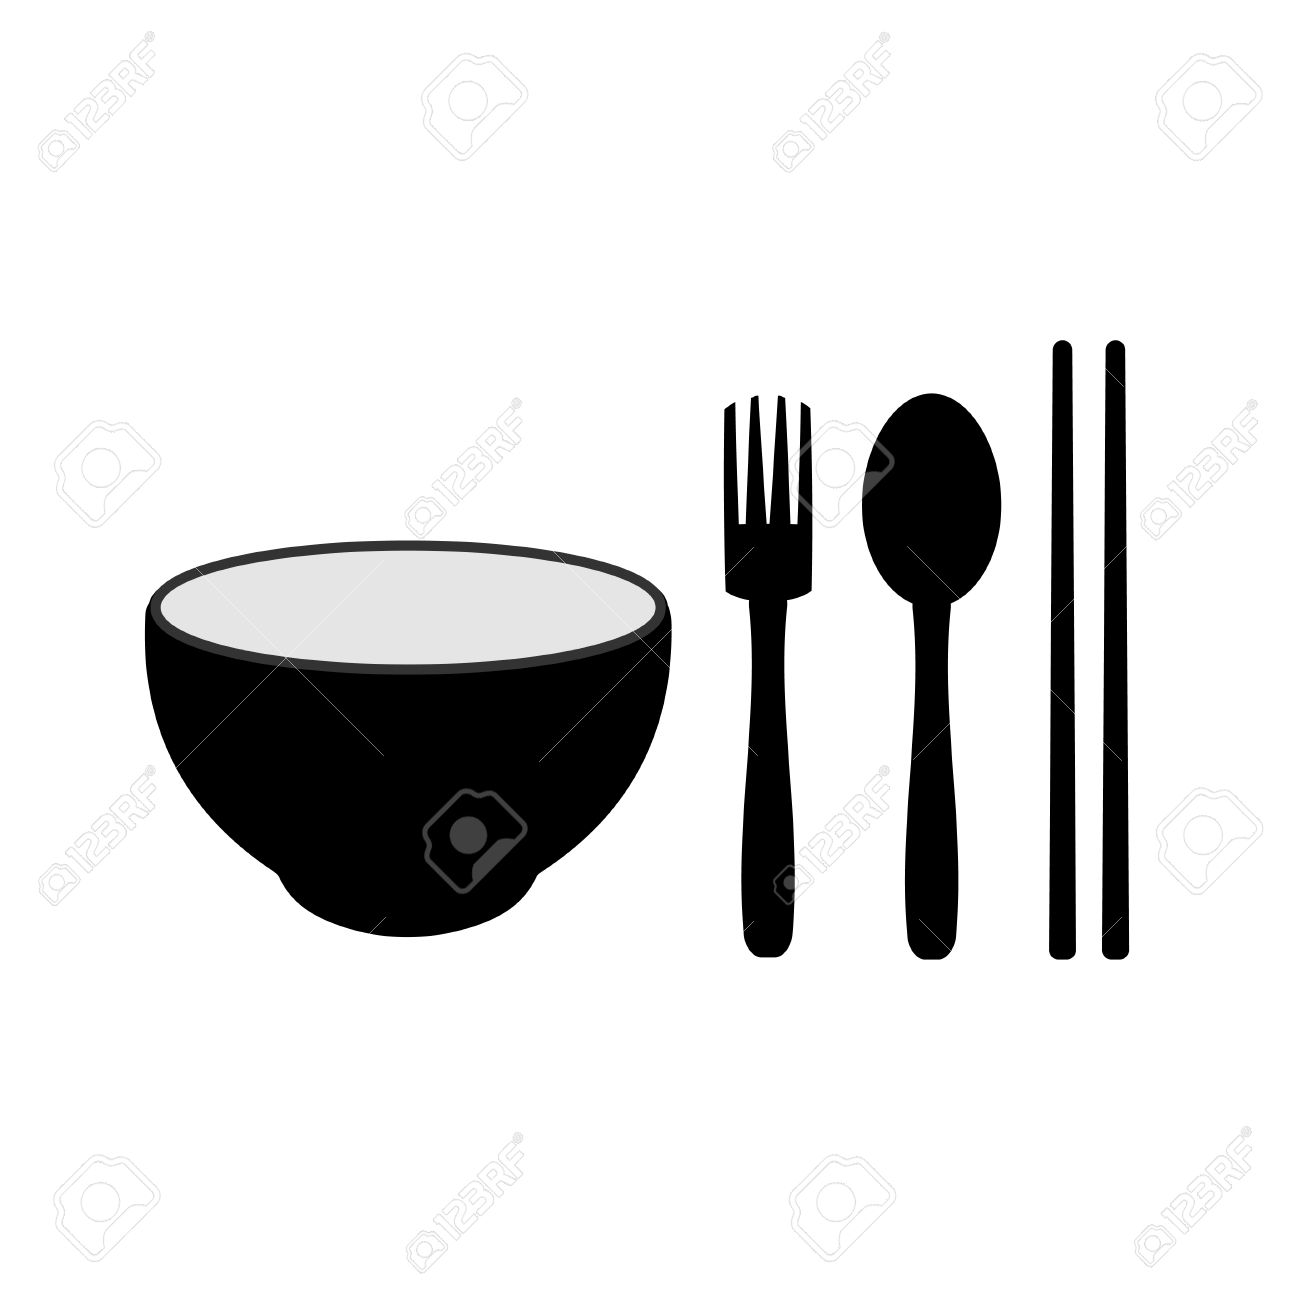 Pencil and in color. Chopsticks clipart spoon